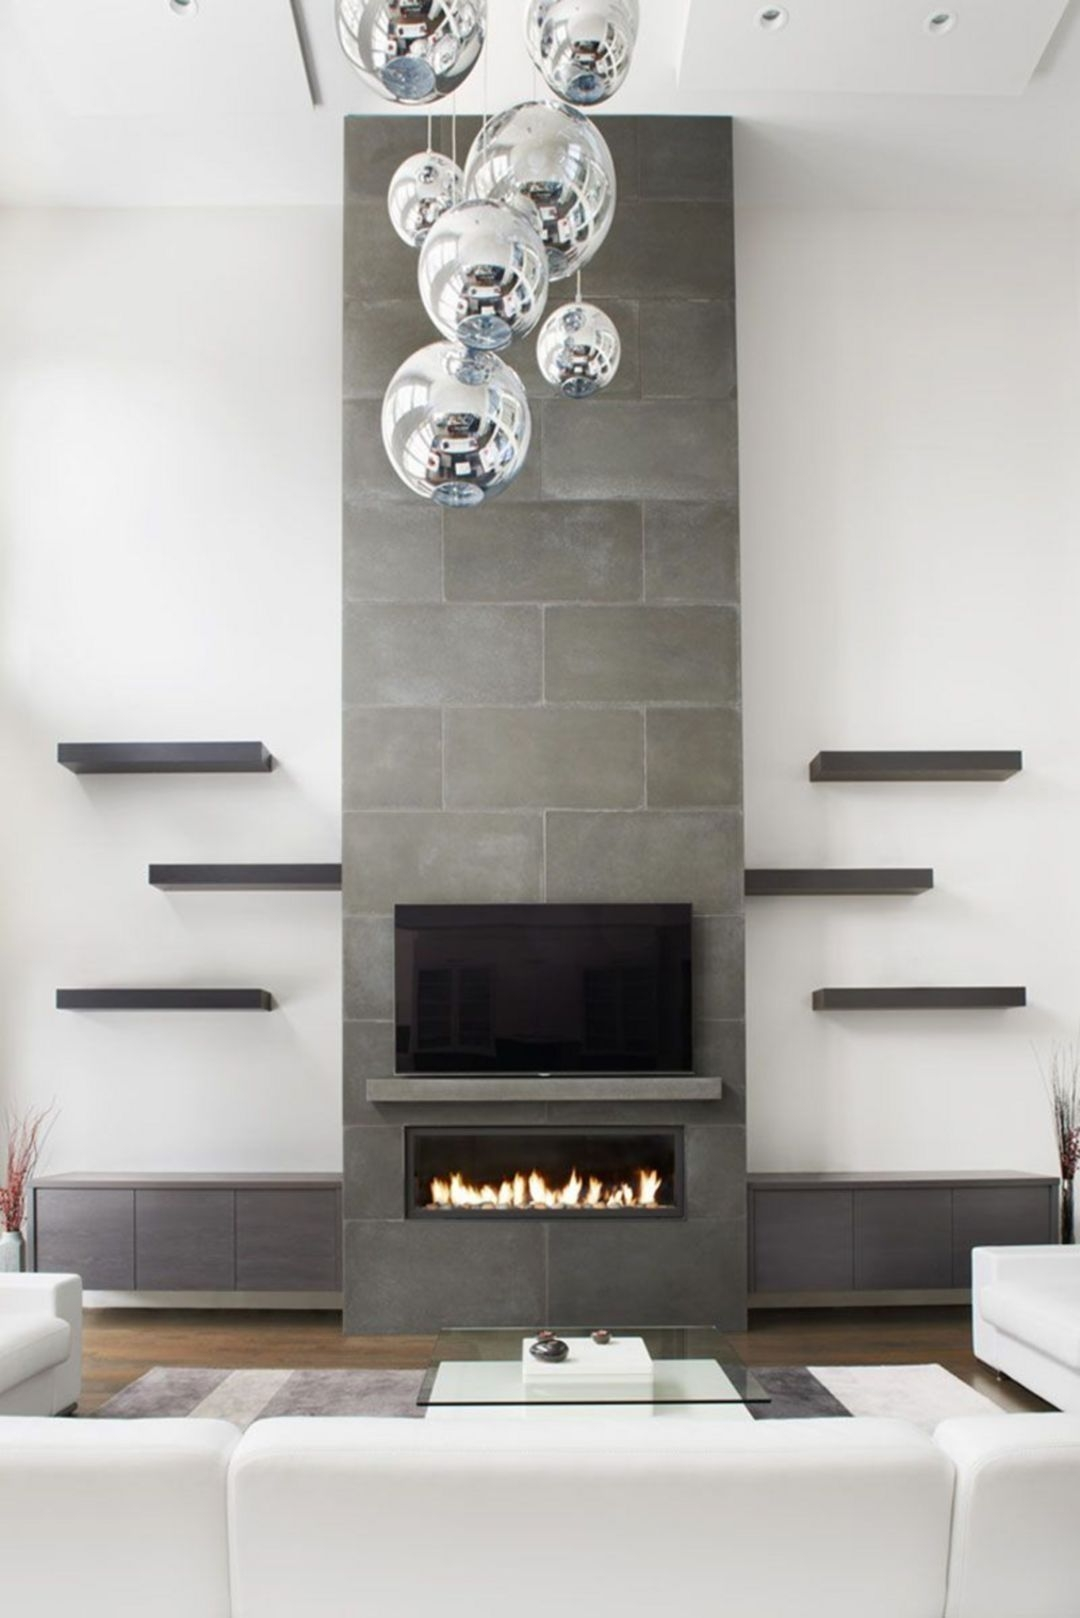 Delicate Living Room Design Ideas With Fireplace To Keep You Warm This Winter 40